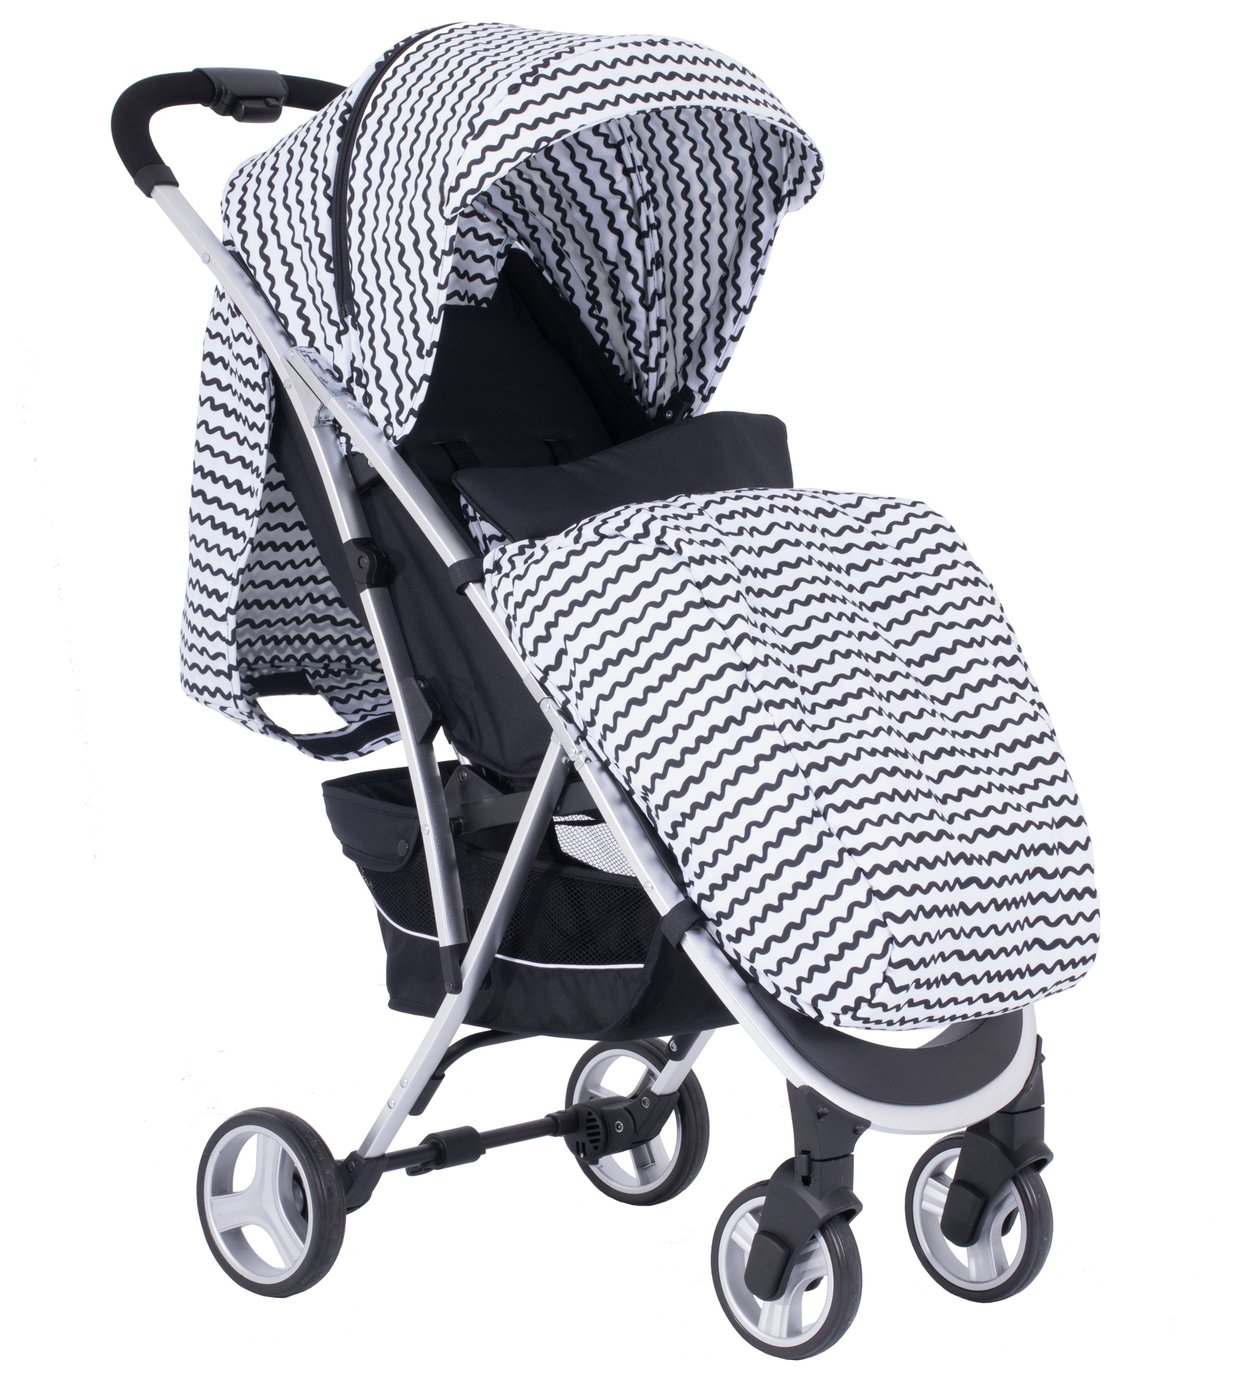 My Babiie Sam Faiers MBX6 Pushchair - Black and White Wave